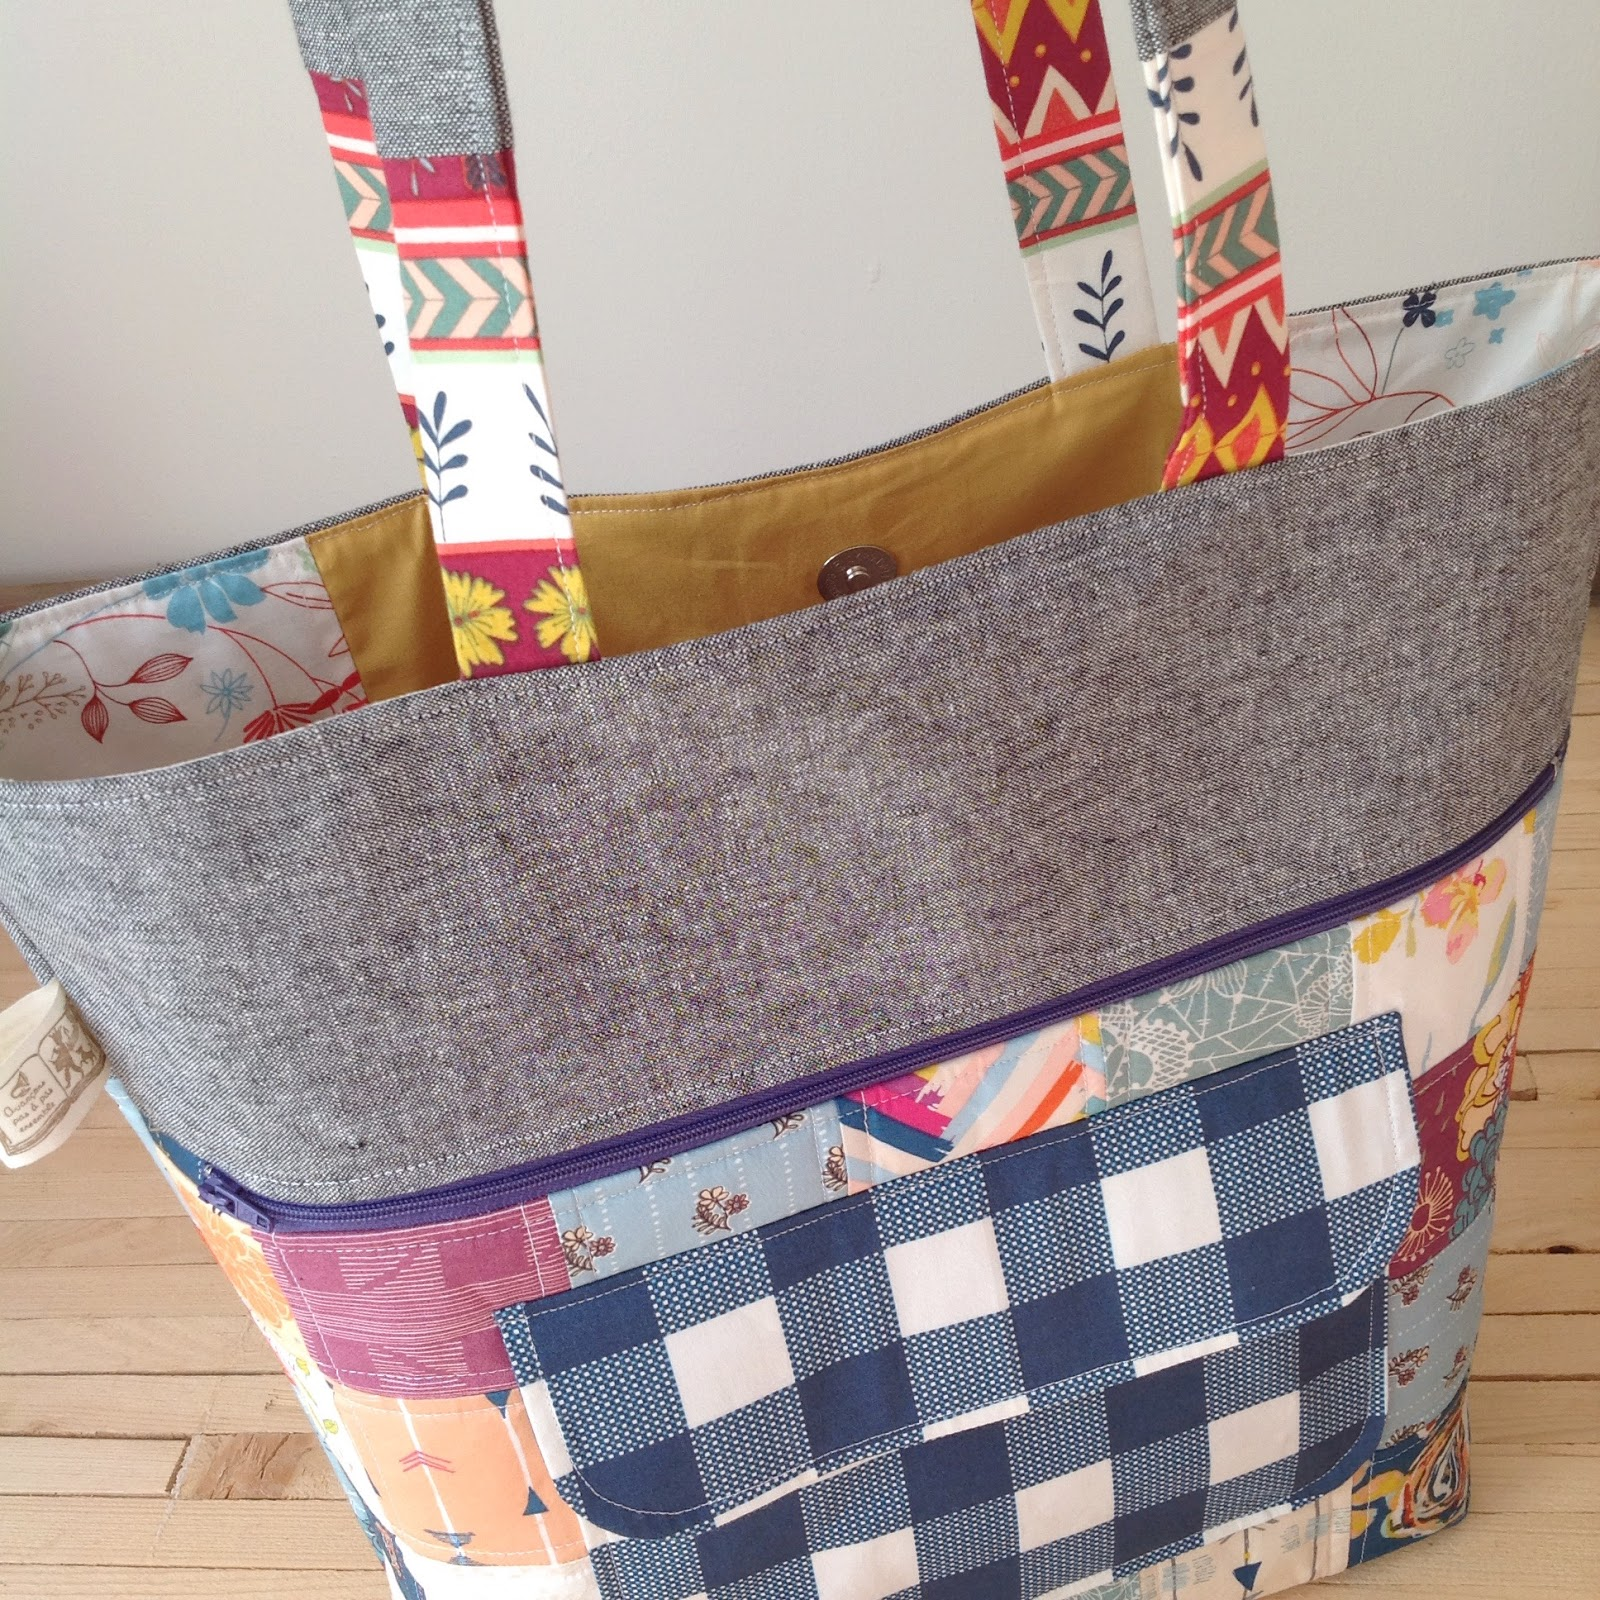 The Floral Suitcase: {caravan tote + tilly}